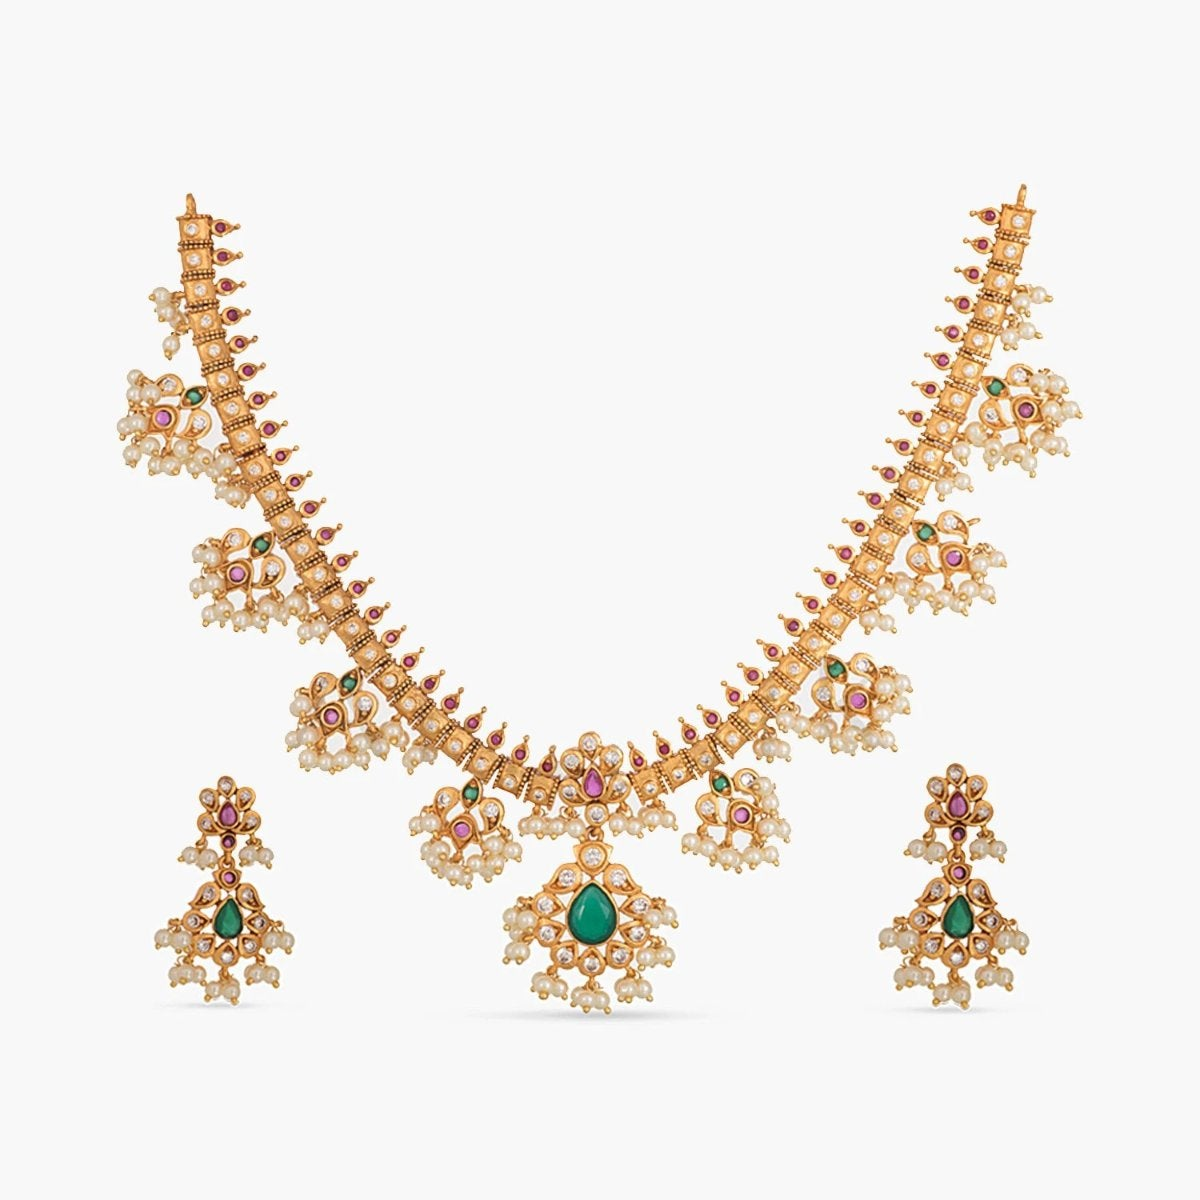 Tarinika - Shop Indian Jewelry Online For All Occasions